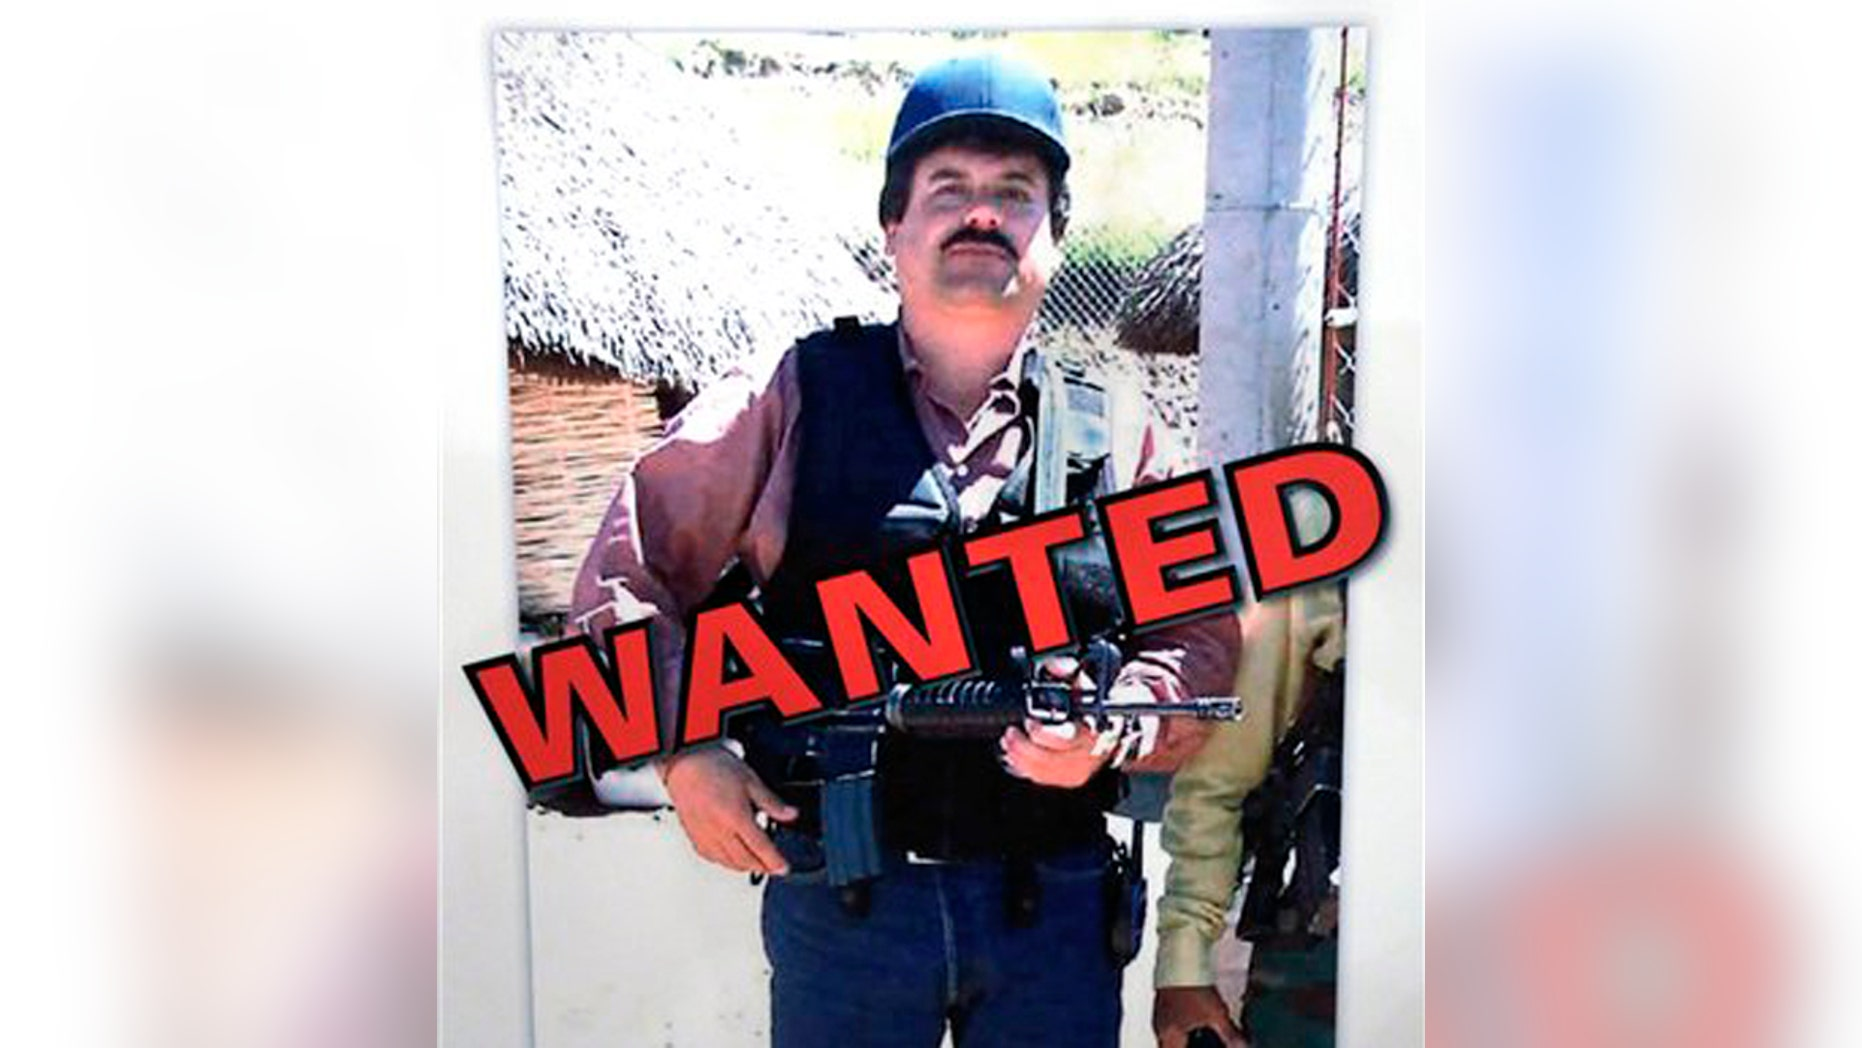 """FILE - In a Thursday, Feb. 14, 2013, file photo, a poster displayed at a Chicago Crime Commission news conference in Chicago, shows Joaquin ``El Chapo'' Guzman, who was deemed Chicago's Public Enemy No. 1.  In a scheme befitting a caper movie, Mexico's most powerful drug lord, Joaquin """"El Chapo"""" Guzman, escaped late Saturday July 11, 2015 from a maximum security prison through a 1.5-kilometer (1 mile) tunnel from a small opening in the shower area of his cell, the country's top security official announced. (AP Photo/M. Spencer Green, File)"""